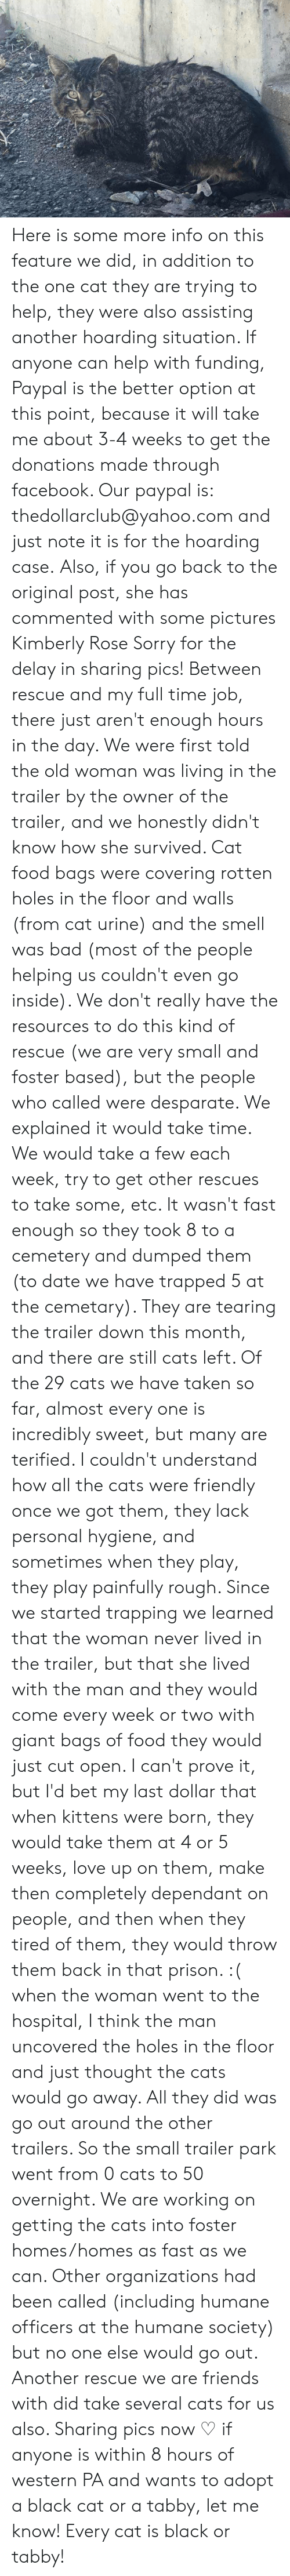 cat urine: Here is some more info on this feature we did, in addition to the one cat they are trying to help, they were also assisting another hoarding situation.  If anyone can help with funding, Paypal is the better option at this point, because it will take me about 3-4 weeks to get the donations made through facebook.  Our paypal is: thedollarclub@yahoo.com and just note it is for the hoarding case.  Also, if you go back to the original post, she has commented with some pictures  Kimberly Rose Sorry for the delay in sharing pics! Between rescue and my full time job, there just aren't enough hours in the day. We were first told the old woman was living in the trailer by the owner of the trailer, and we honestly didn't know how she survived. Cat food bags were covering rotten holes in the floor and walls (from cat urine) and the smell was bad (most of the people helping us couldn't even go inside). We don't really have the resources to do this kind of rescue (we are very small and foster based), but the people who called were desparate. We explained it would take time. We would take a few each week, try to get other rescues to take some, etc. It wasn't fast enough so they took 8 to a cemetery and dumped them (to date we have trapped 5 at the cemetary). They are tearing the trailer down this month, and there are still cats left. Of the 29 cats we have taken so far, almost every one is incredibly sweet, but many are terified. I couldn't understand how all the cats were friendly once we got them, they lack personal hygiene, and sometimes when they play, they play painfully rough. Since we started trapping we learned that the woman never lived in the trailer, but that she lived with the man and they would come every week or two with giant bags of food they would just cut open. I can't prove it, but I'd bet my last dollar that when kittens were born, they would take them at 4 or 5 weeks, love up on them, make then completely dependant on people, and then when they tire